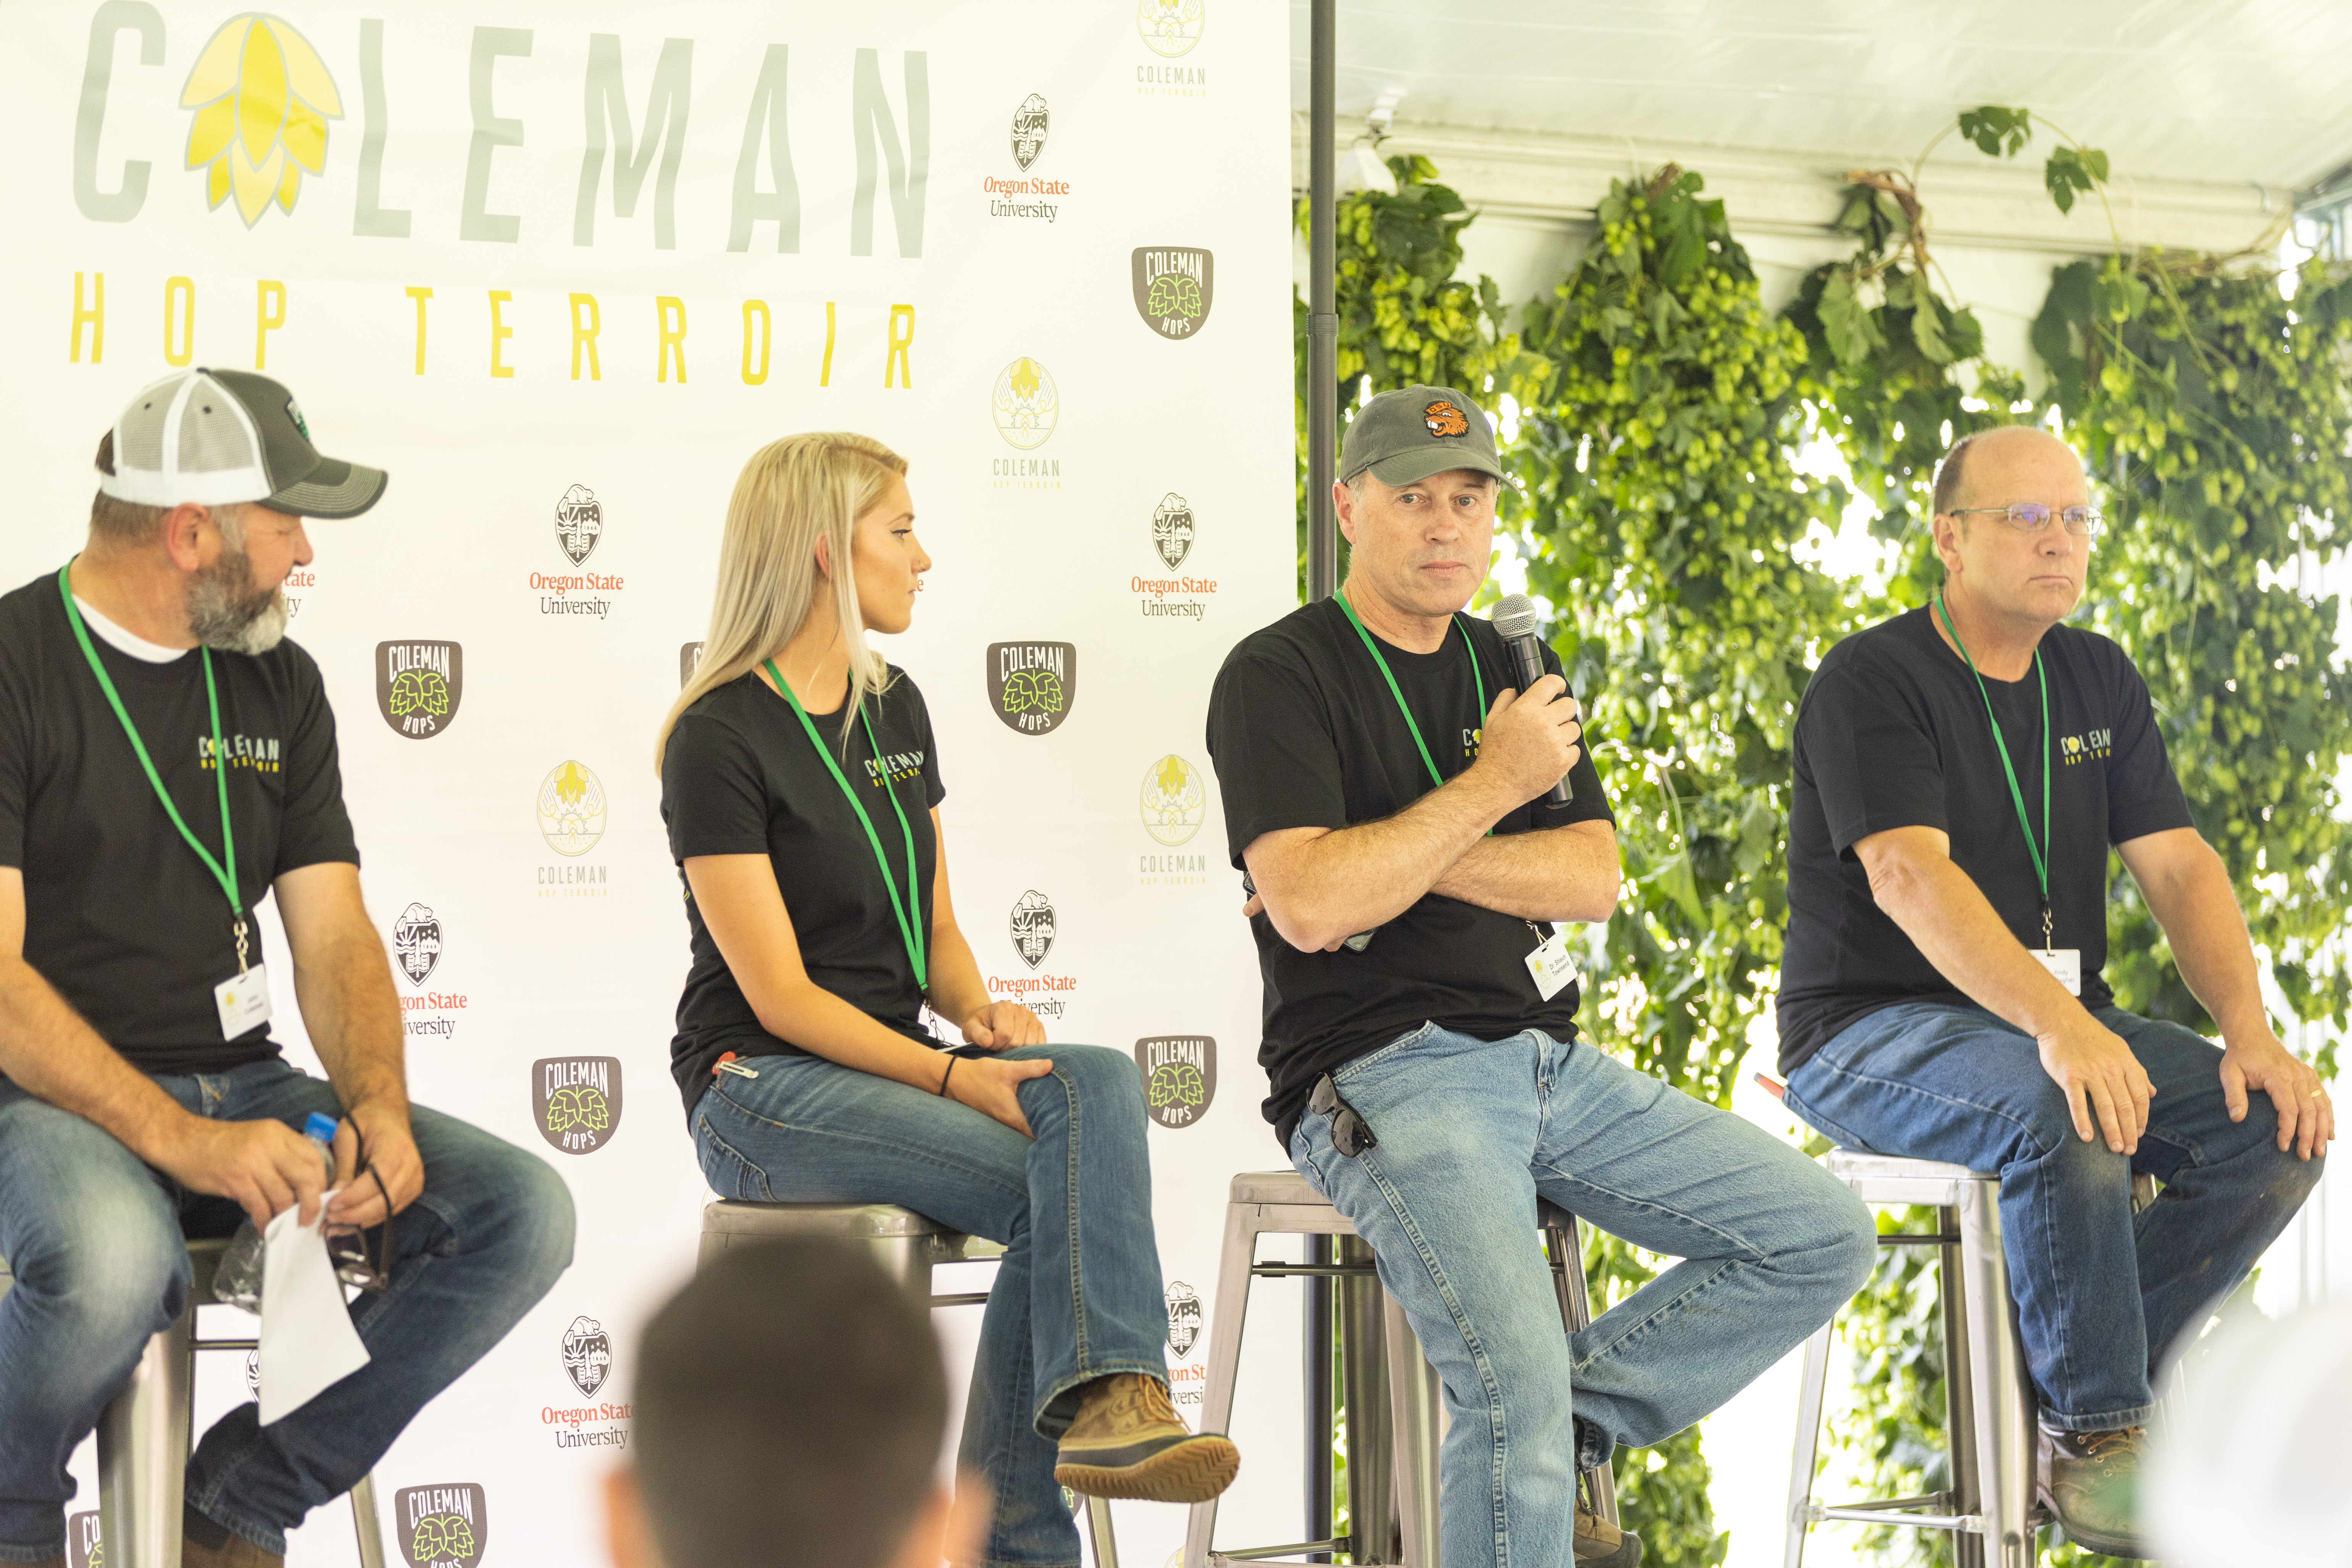 Coleman Agriculture Hop Terroir Panelists - John Coleman, Haley Nelson, Dr. Shaun Townsend and Andy Gallagher. (image courtesy of Coleman Agriculture)